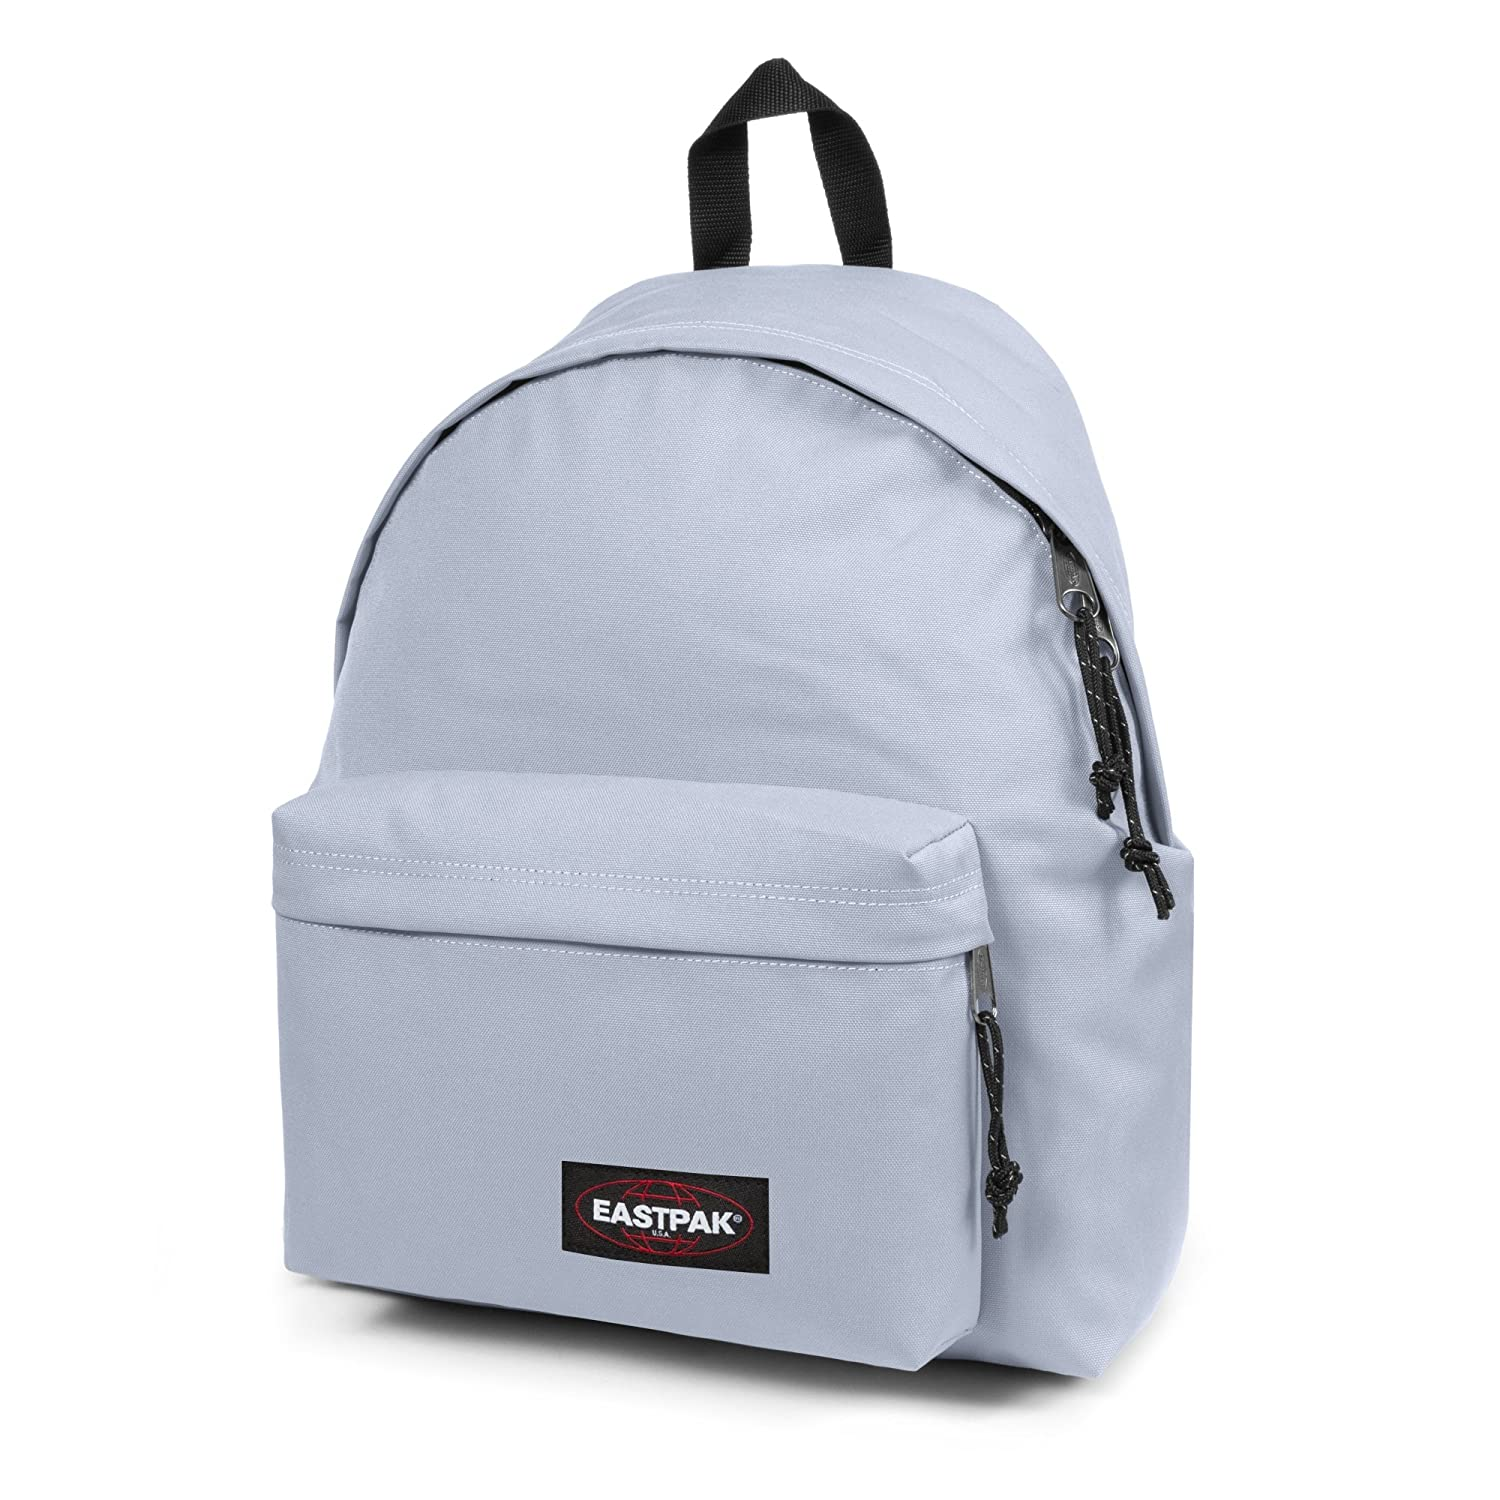 Eastpak Mochila EK62087K, Blanco: Amazon.es: Equipaje